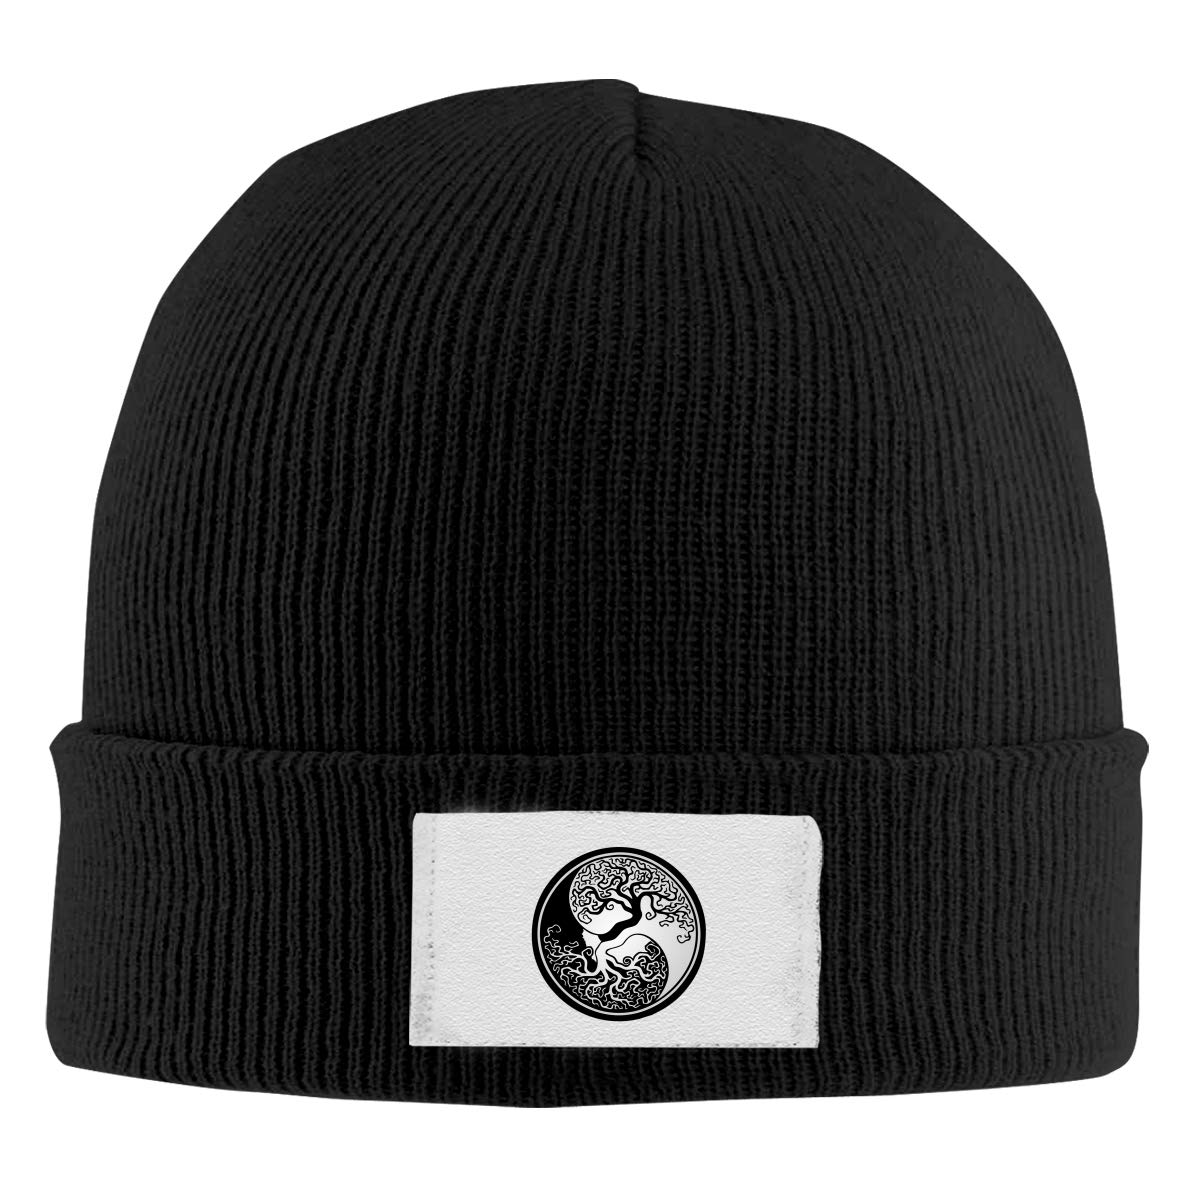 Skull Caps Tree of Life Yin Yang Winter Warm Knit Hats Stretchy Cuff Beanie Hat Black